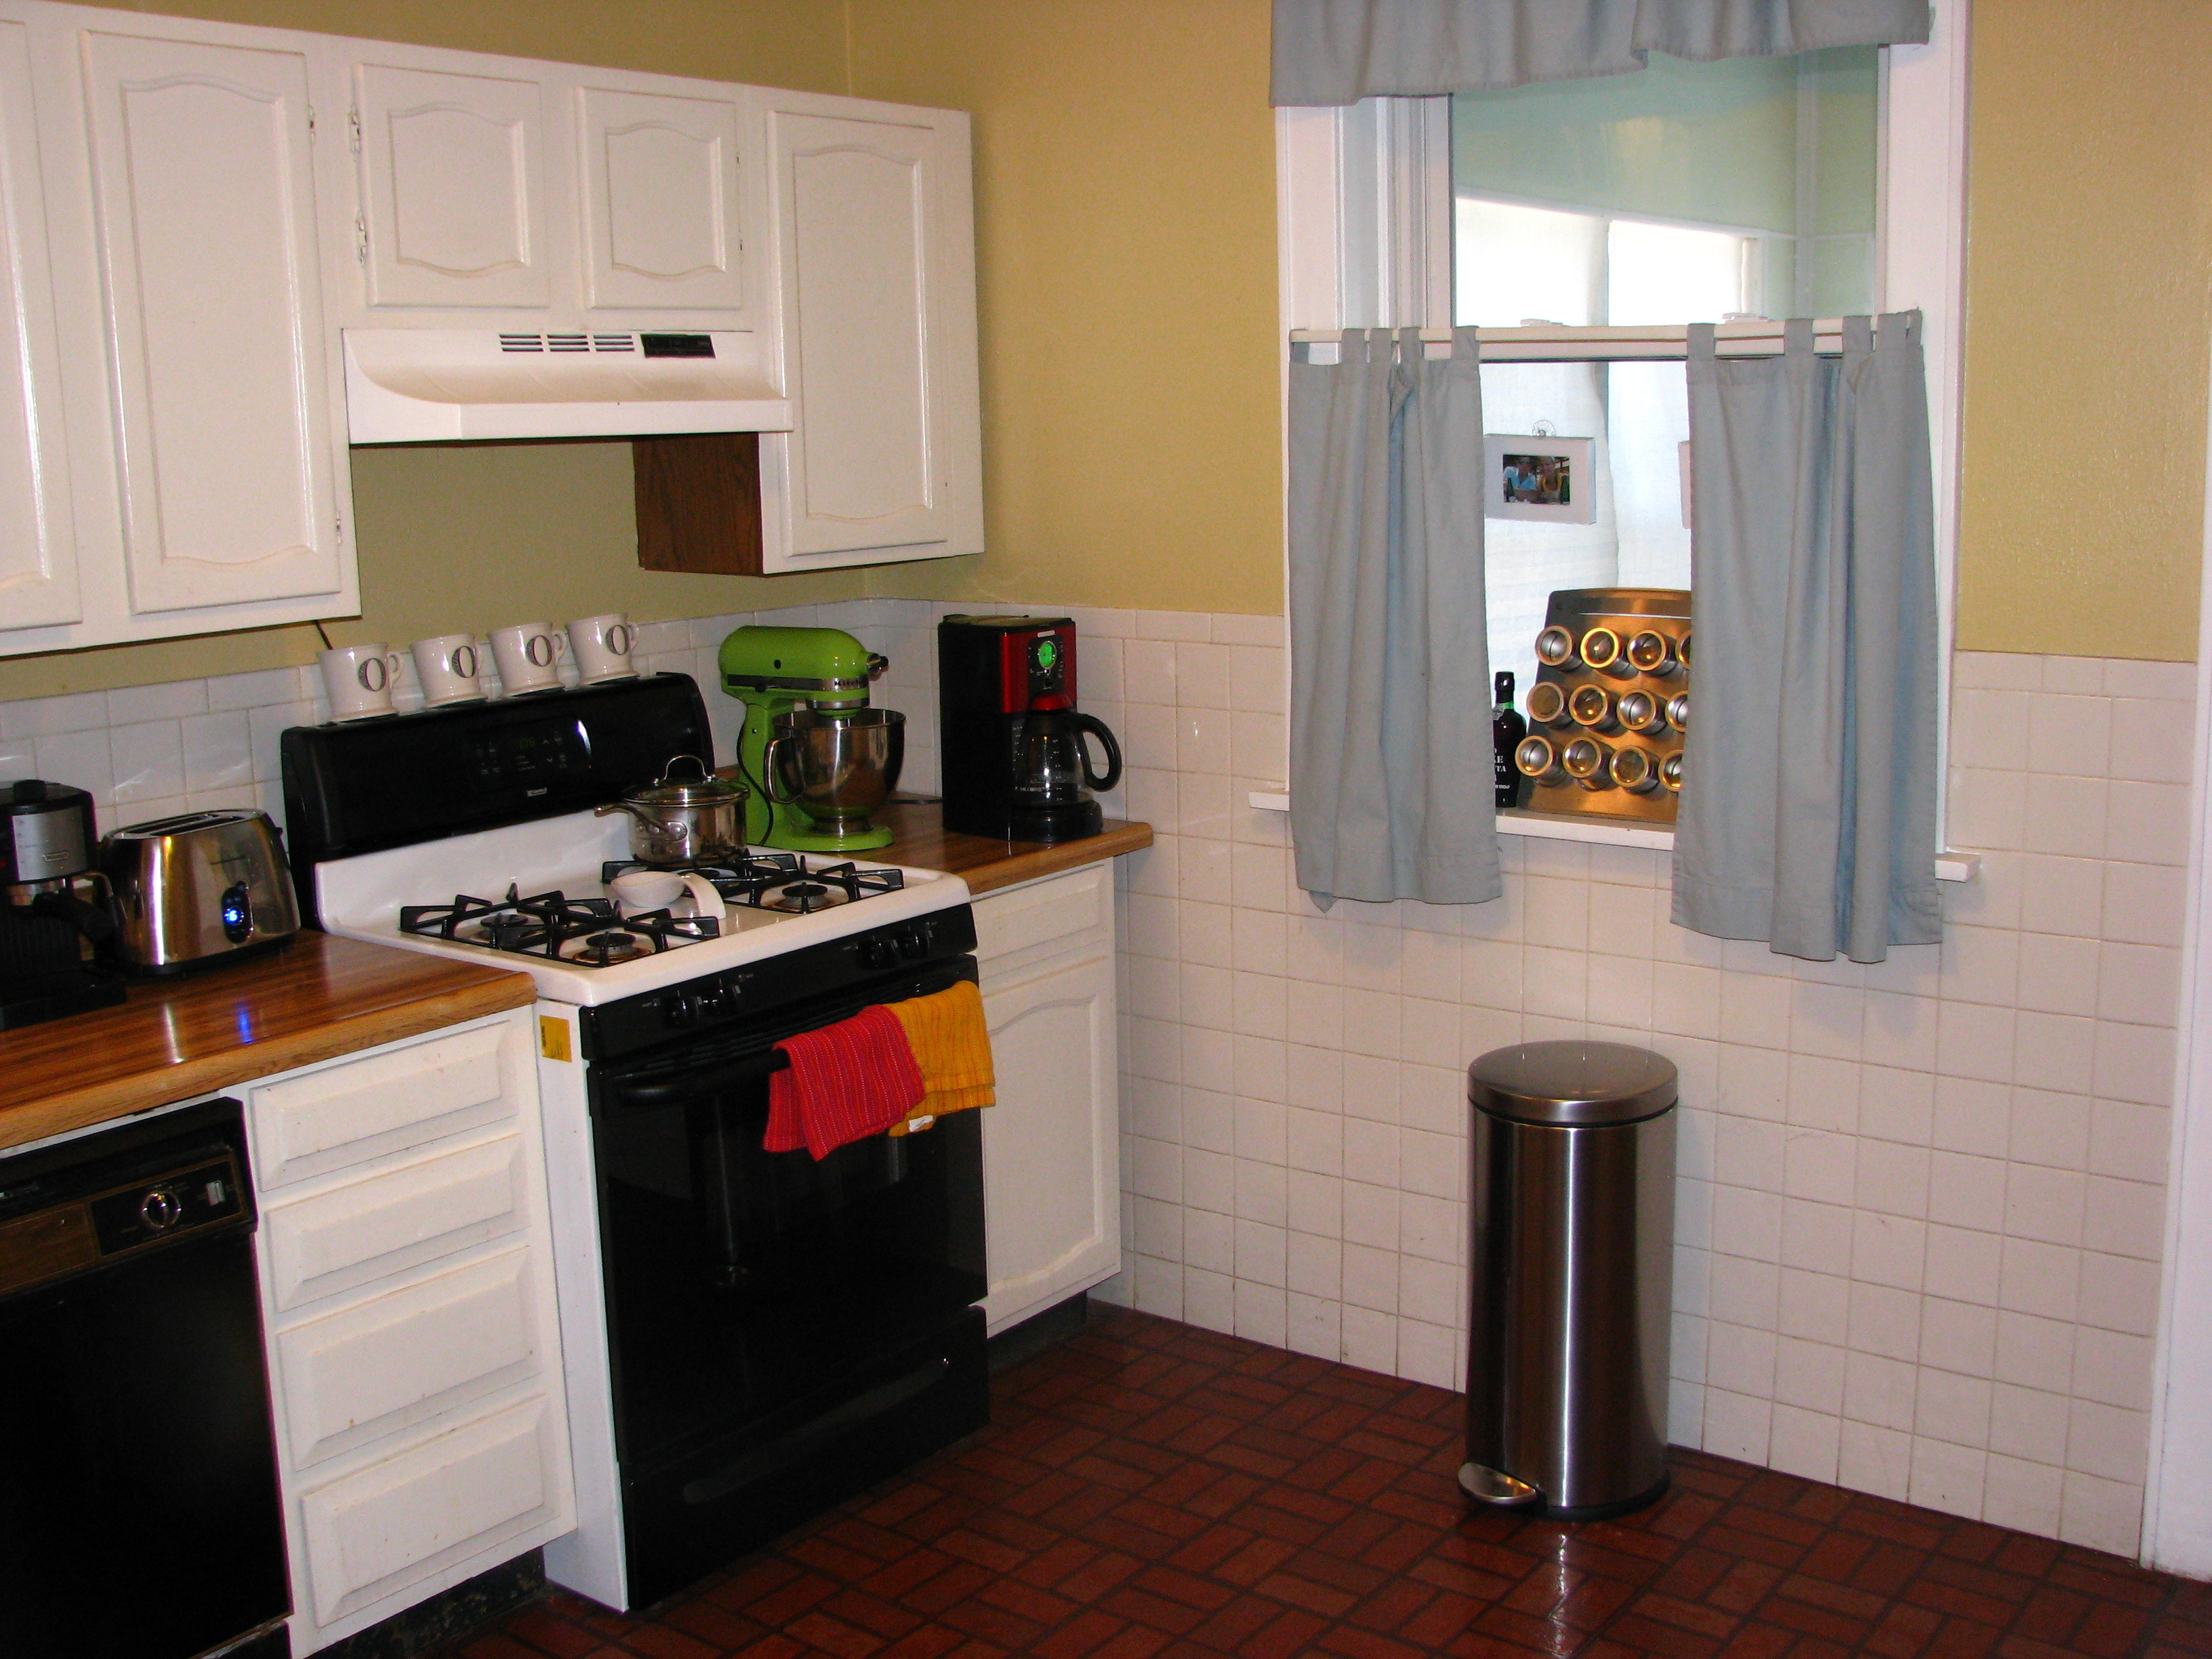 St Louis Appliance Property For Rent In St Louis Mo Turbo Tenant The Easiest